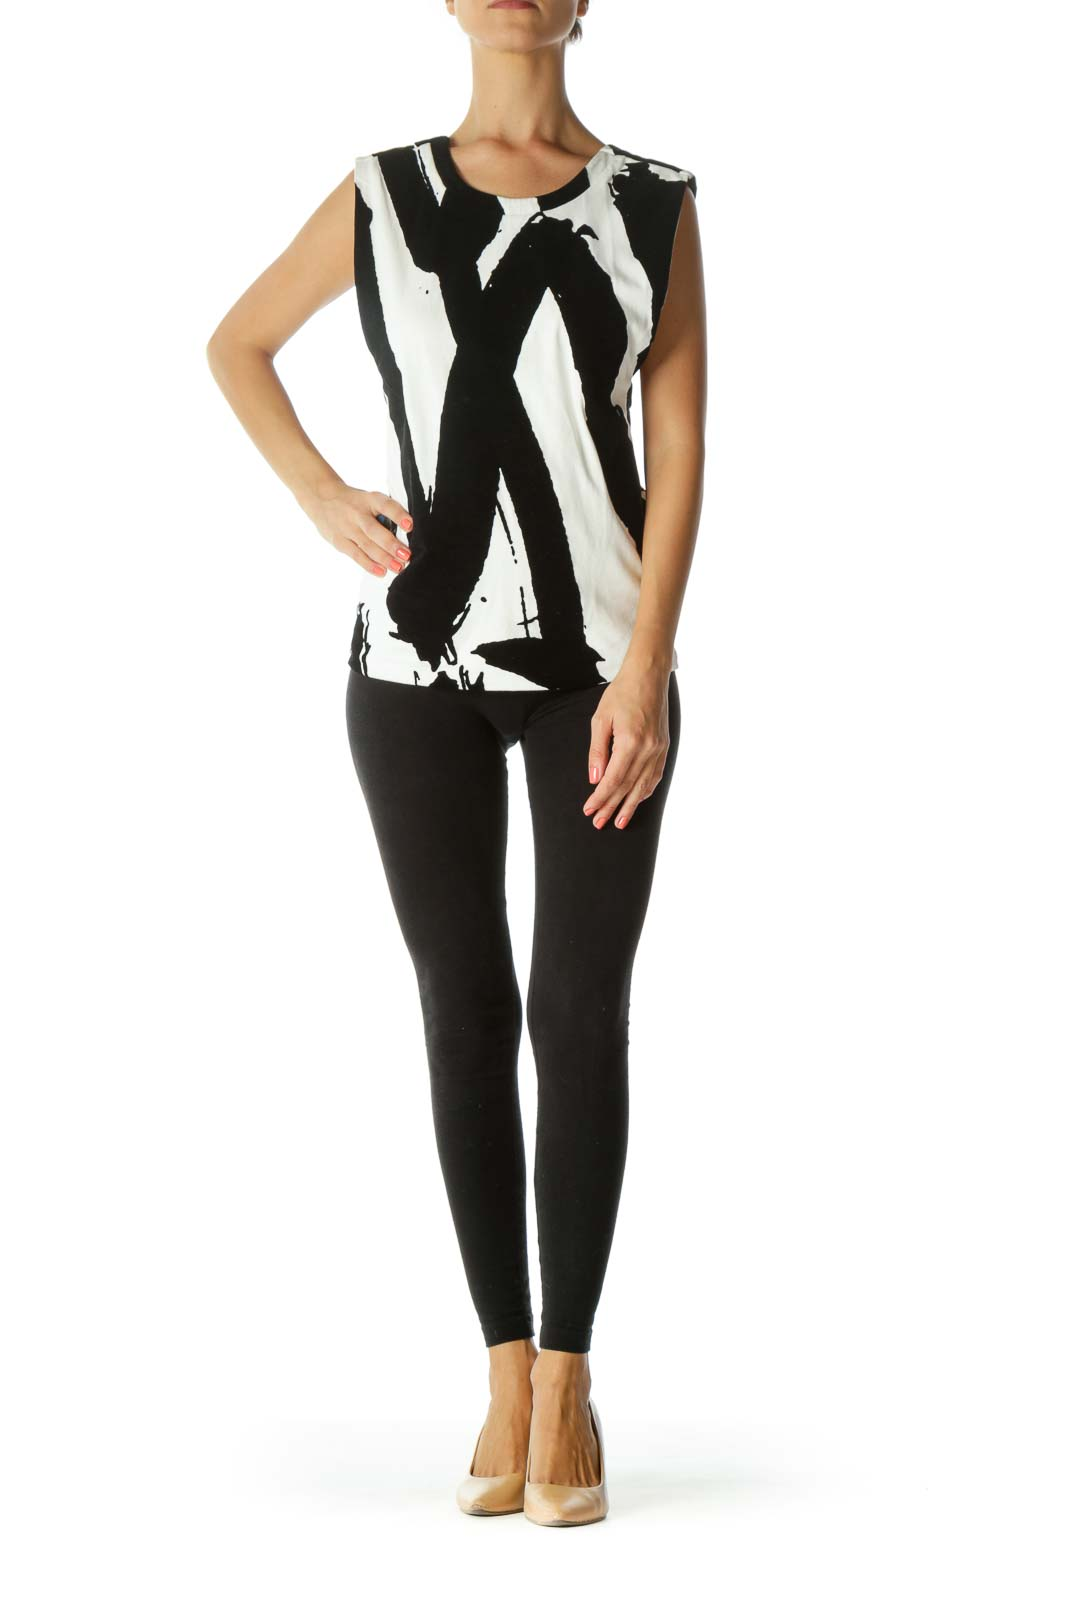 Black and White Open V-Neck Back Top with Raised Black-Velvet Design